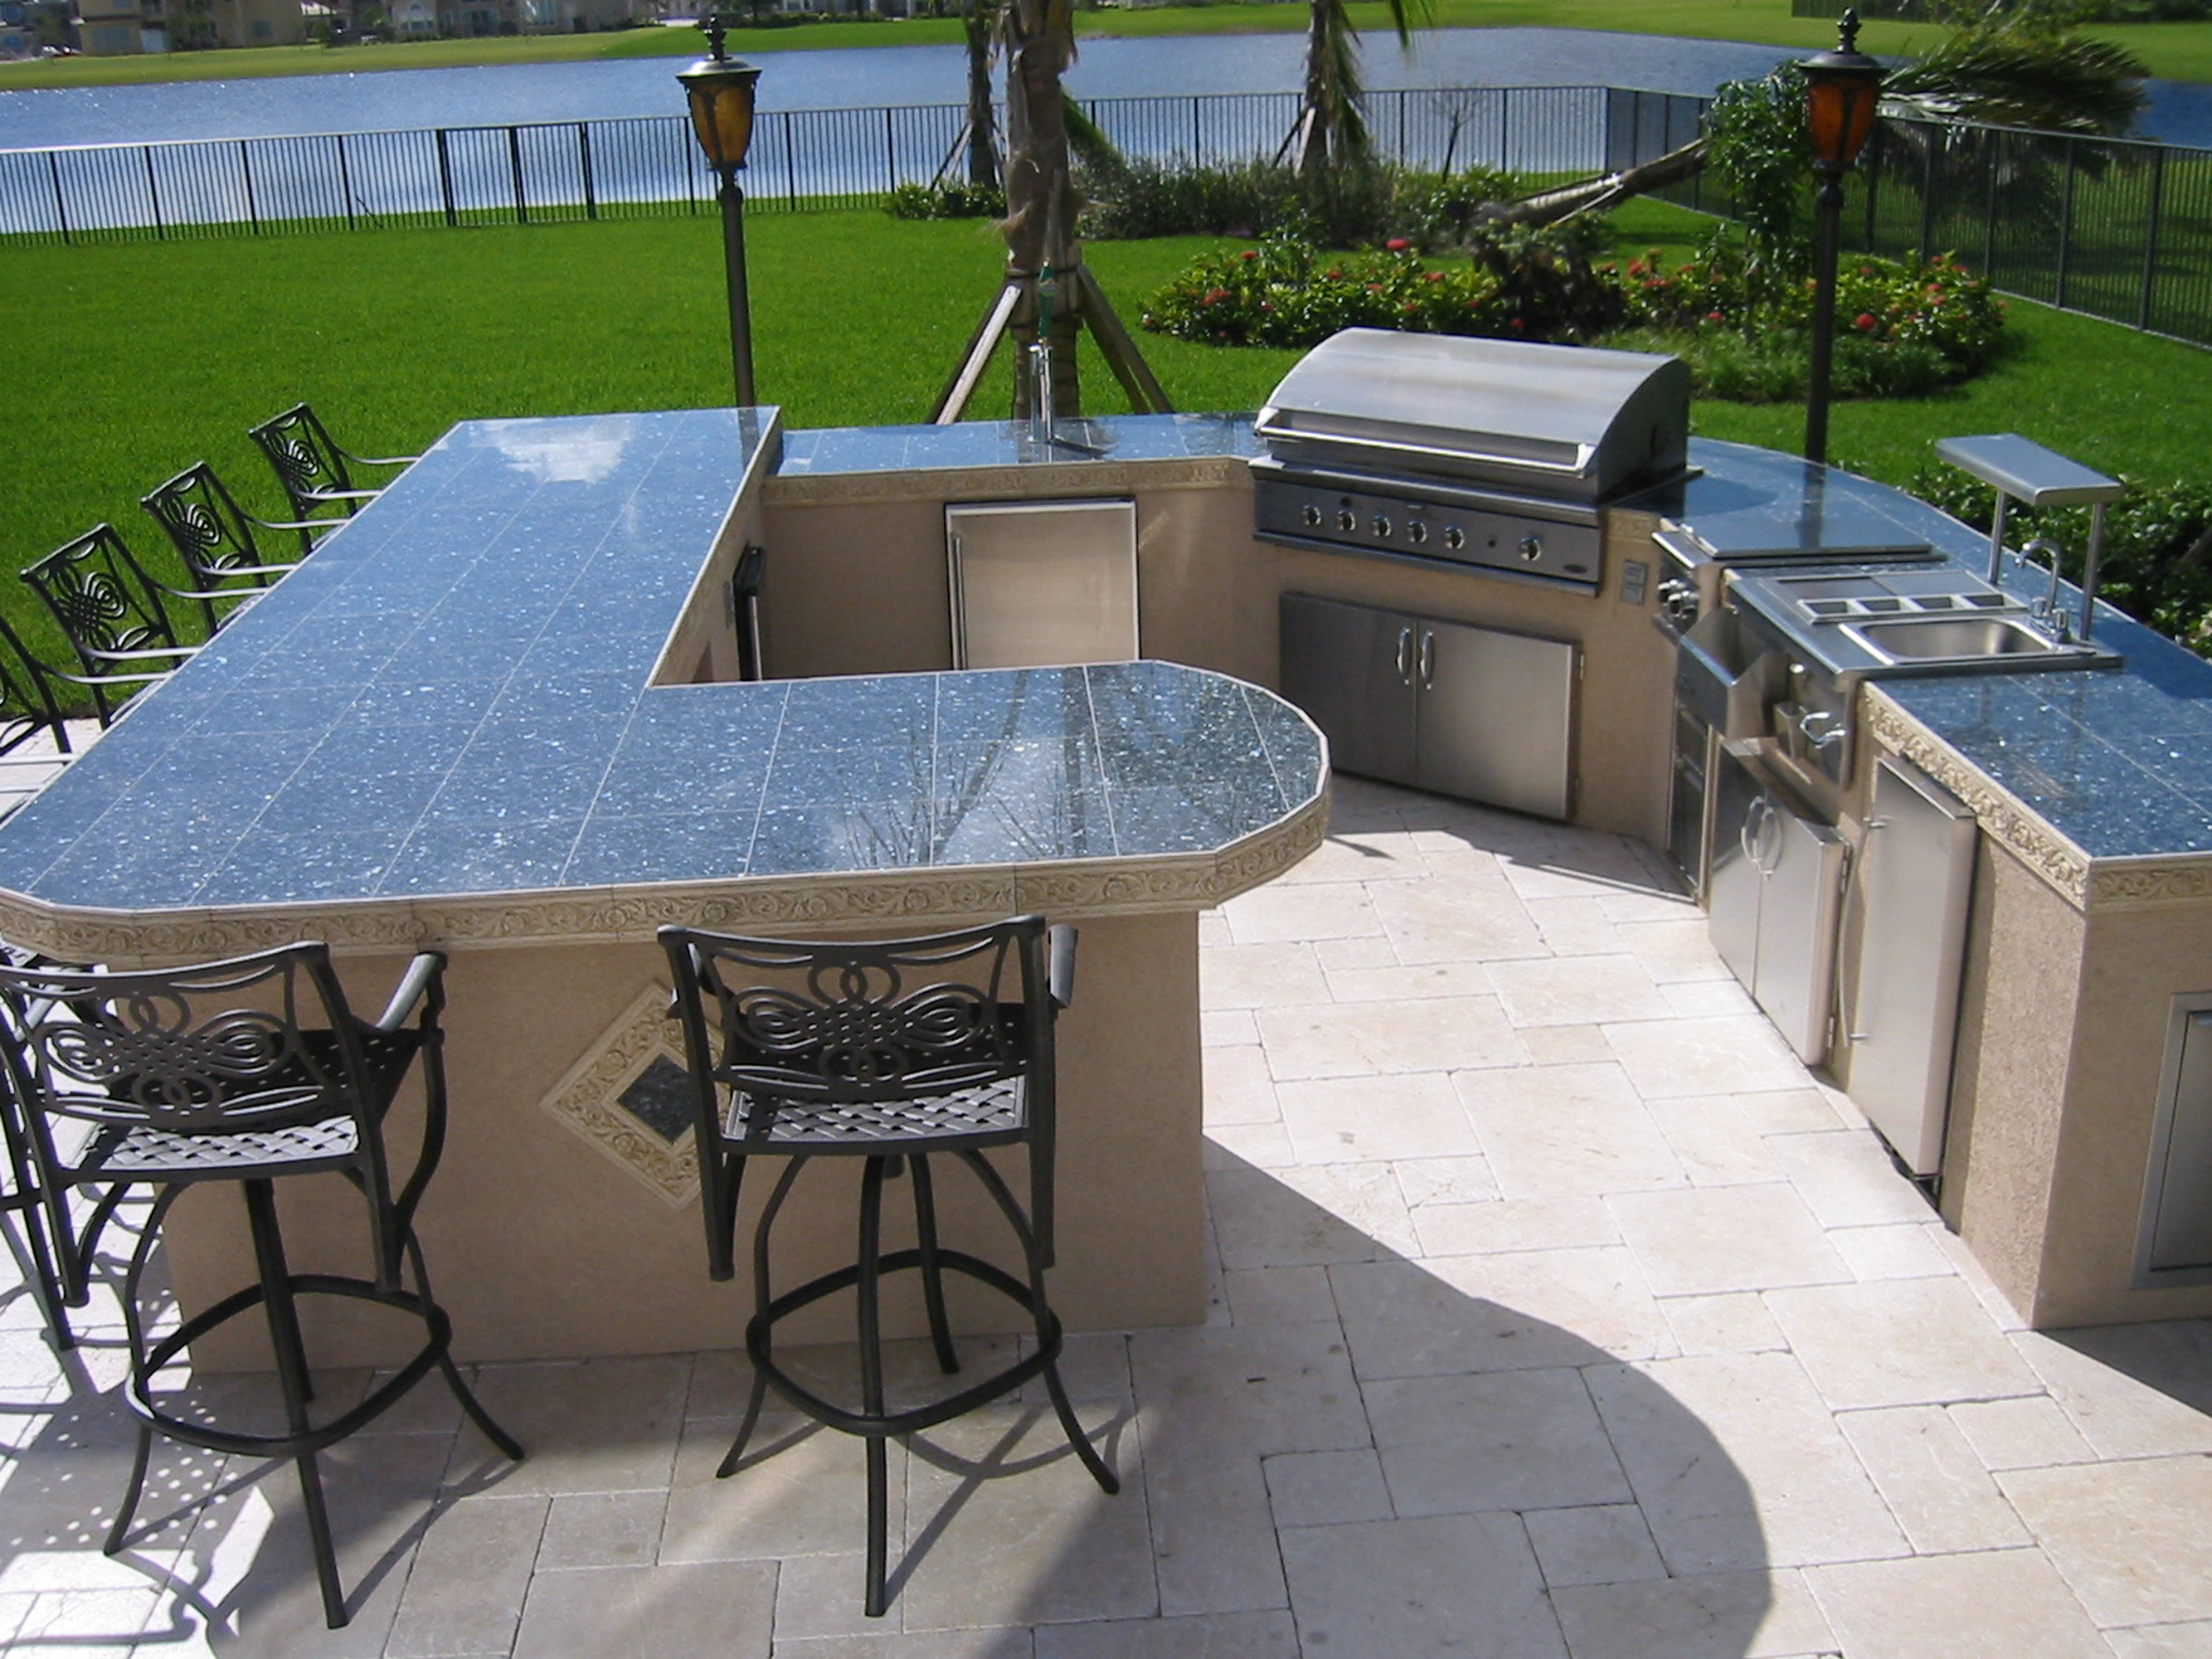 BBQ Grills for Landscape Design and Outdoor Kitchens